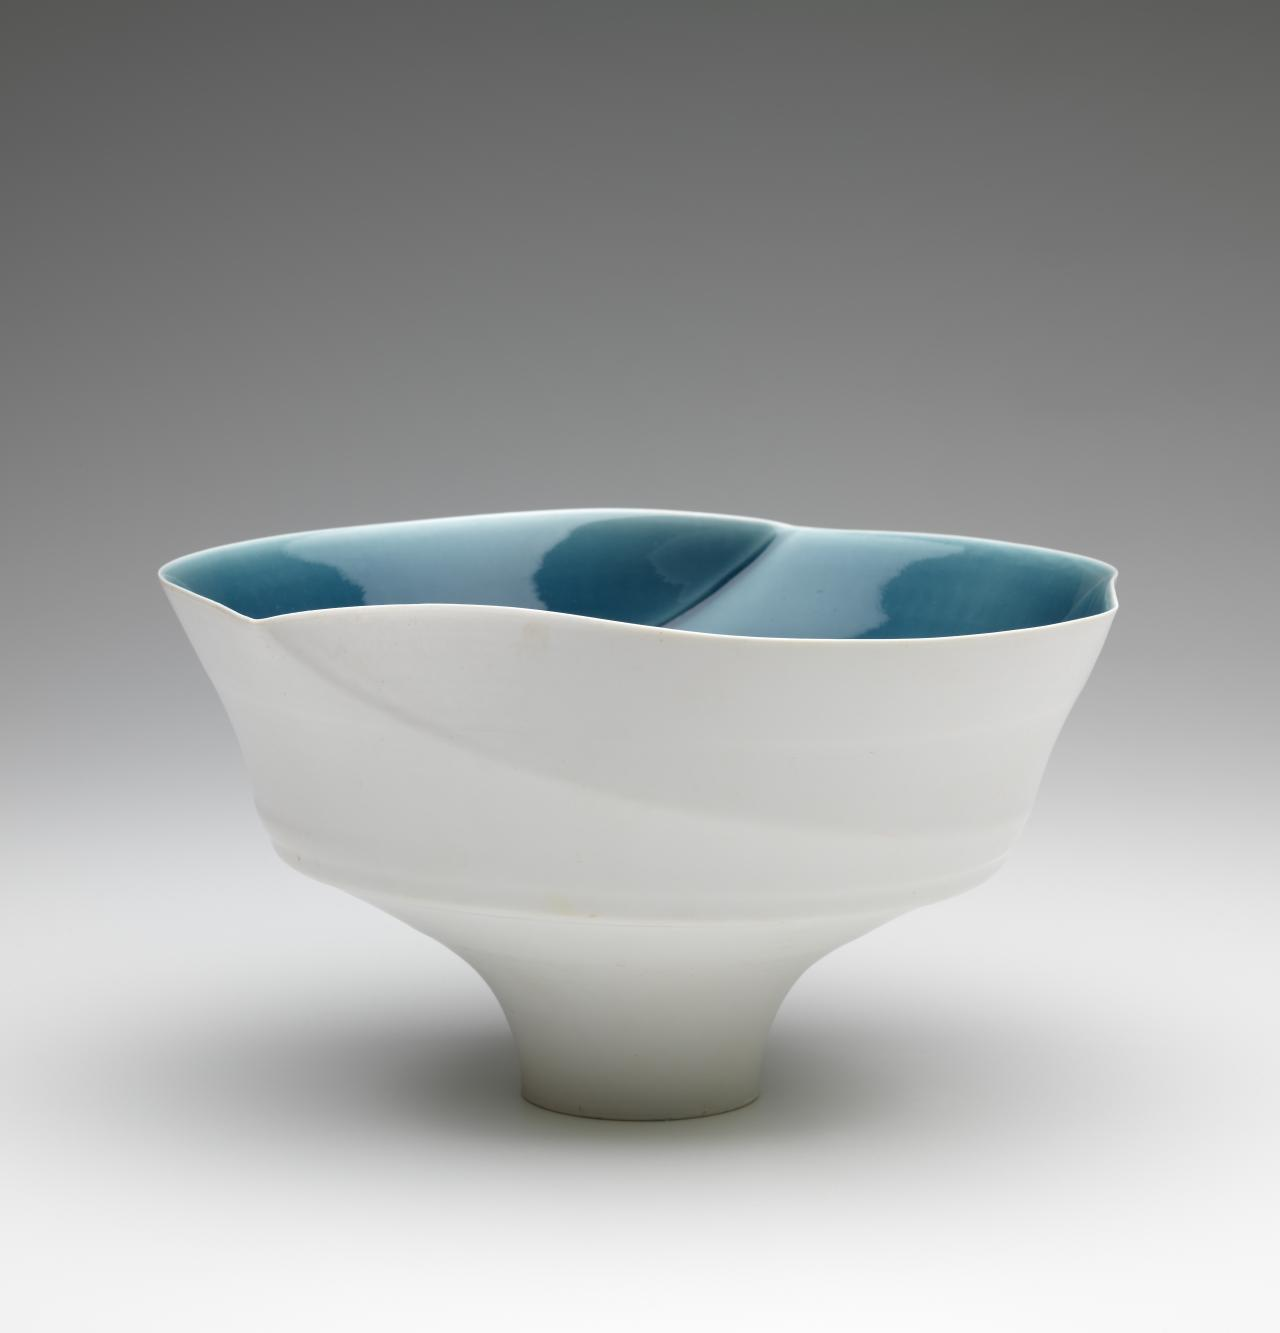 Spiral lip bowl with blue interior glaze